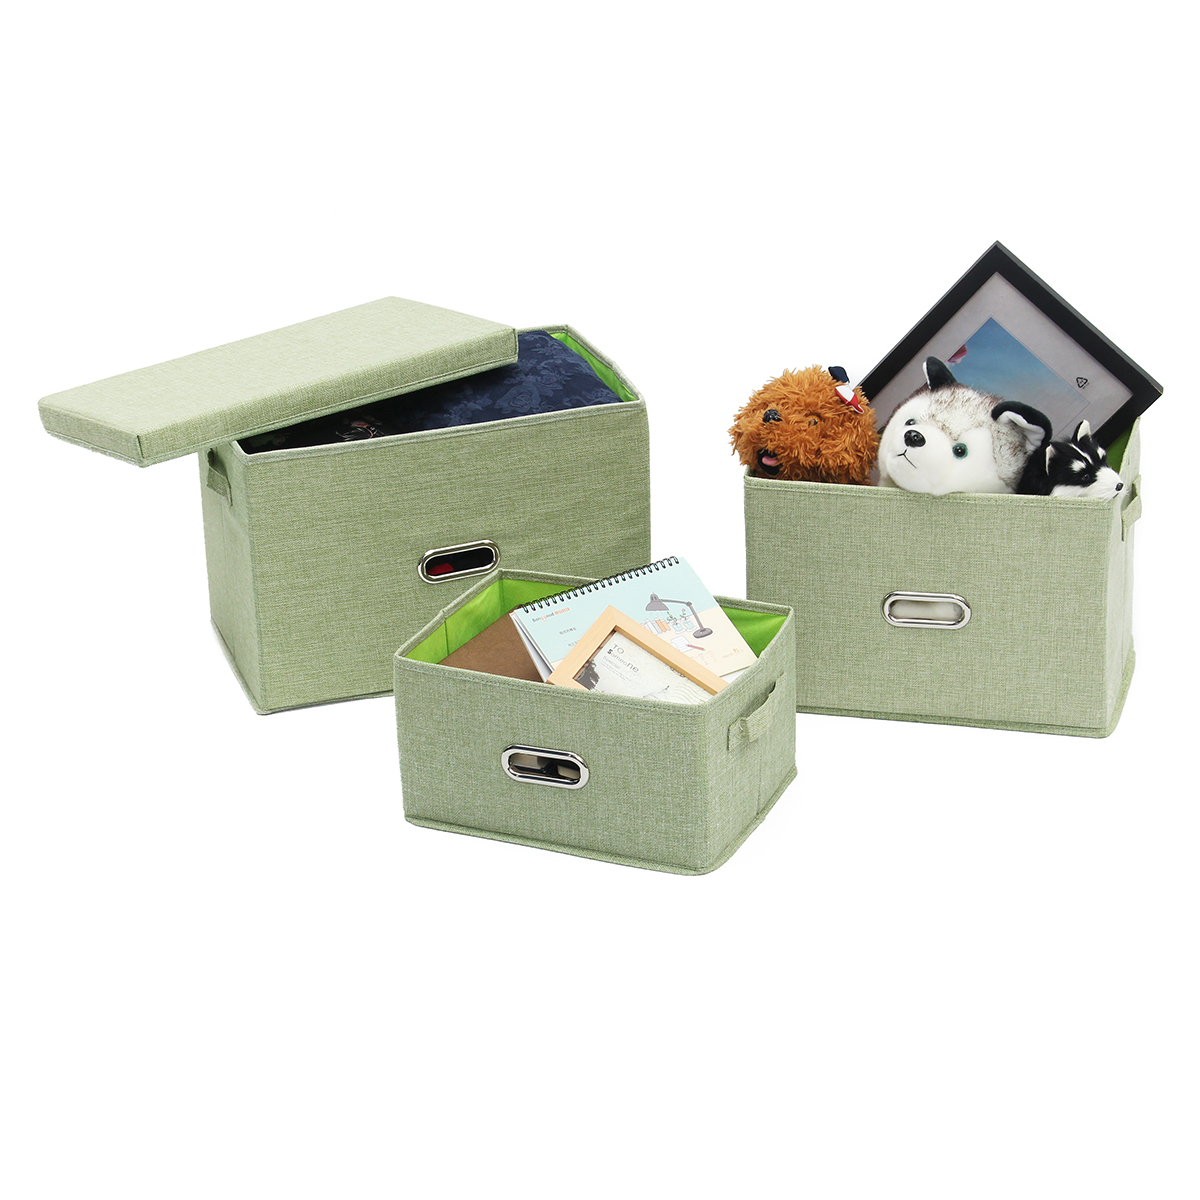 Folding Clothes Storage Baskets Home Camping Sundries Organizer Laundry Box Container With Lid